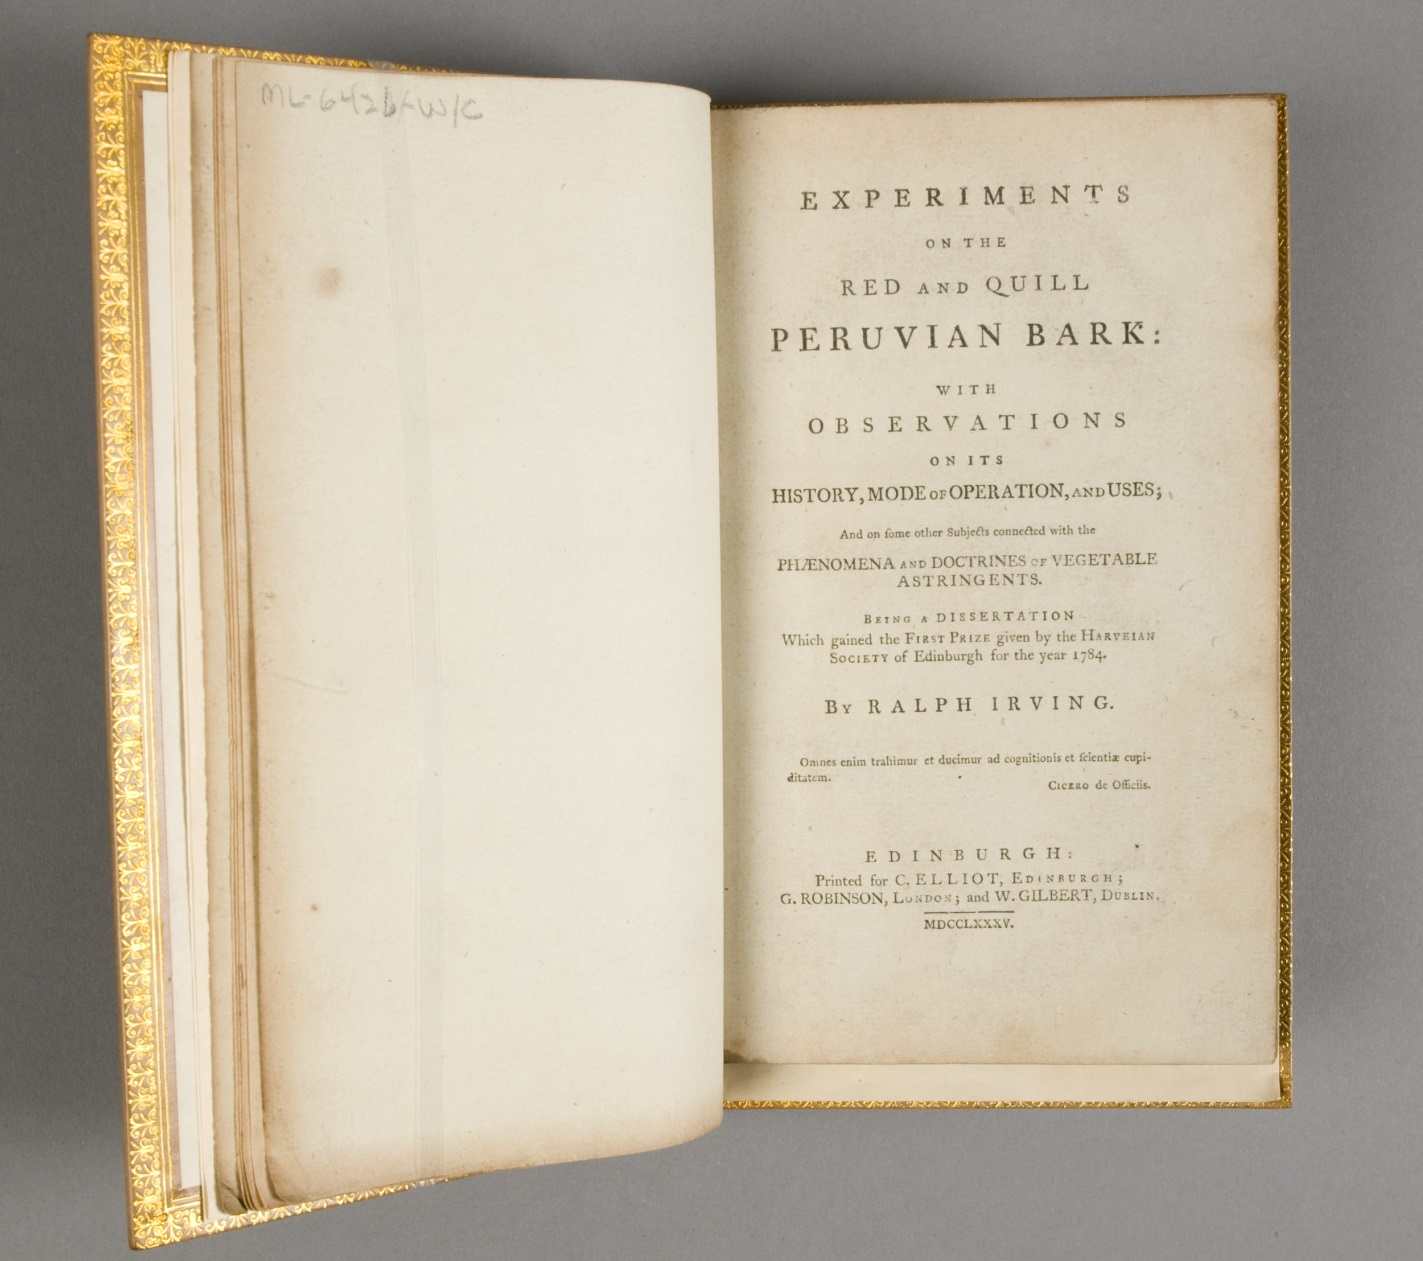 George Washington's copy of Experiments on the Red and Quill Peruvian Bark, book, two pamphlets bound together, MVLA, Gift of Robert L. McNeil, Jr., 2005, Conservation courtesy of the Roller-Bottimore Foundation [ML-6426-W/C]